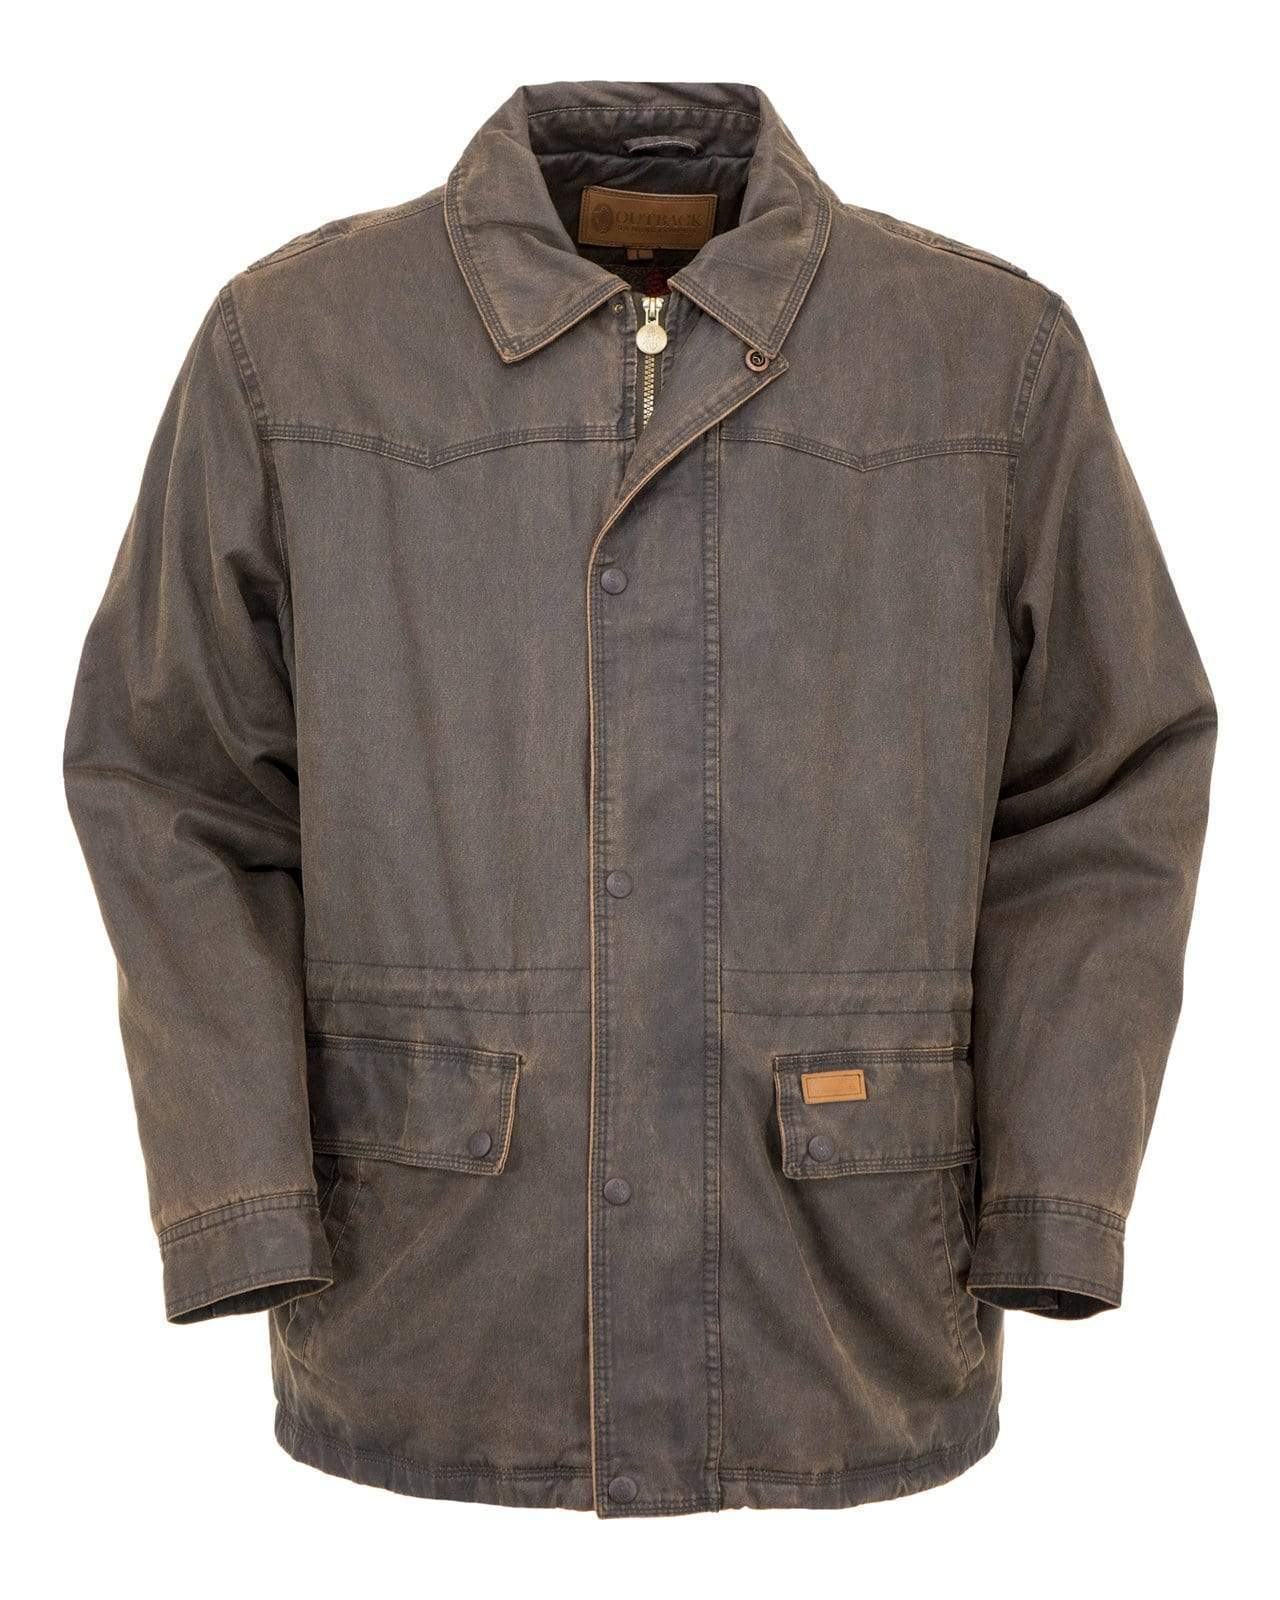 Outback Ranchers Jacket